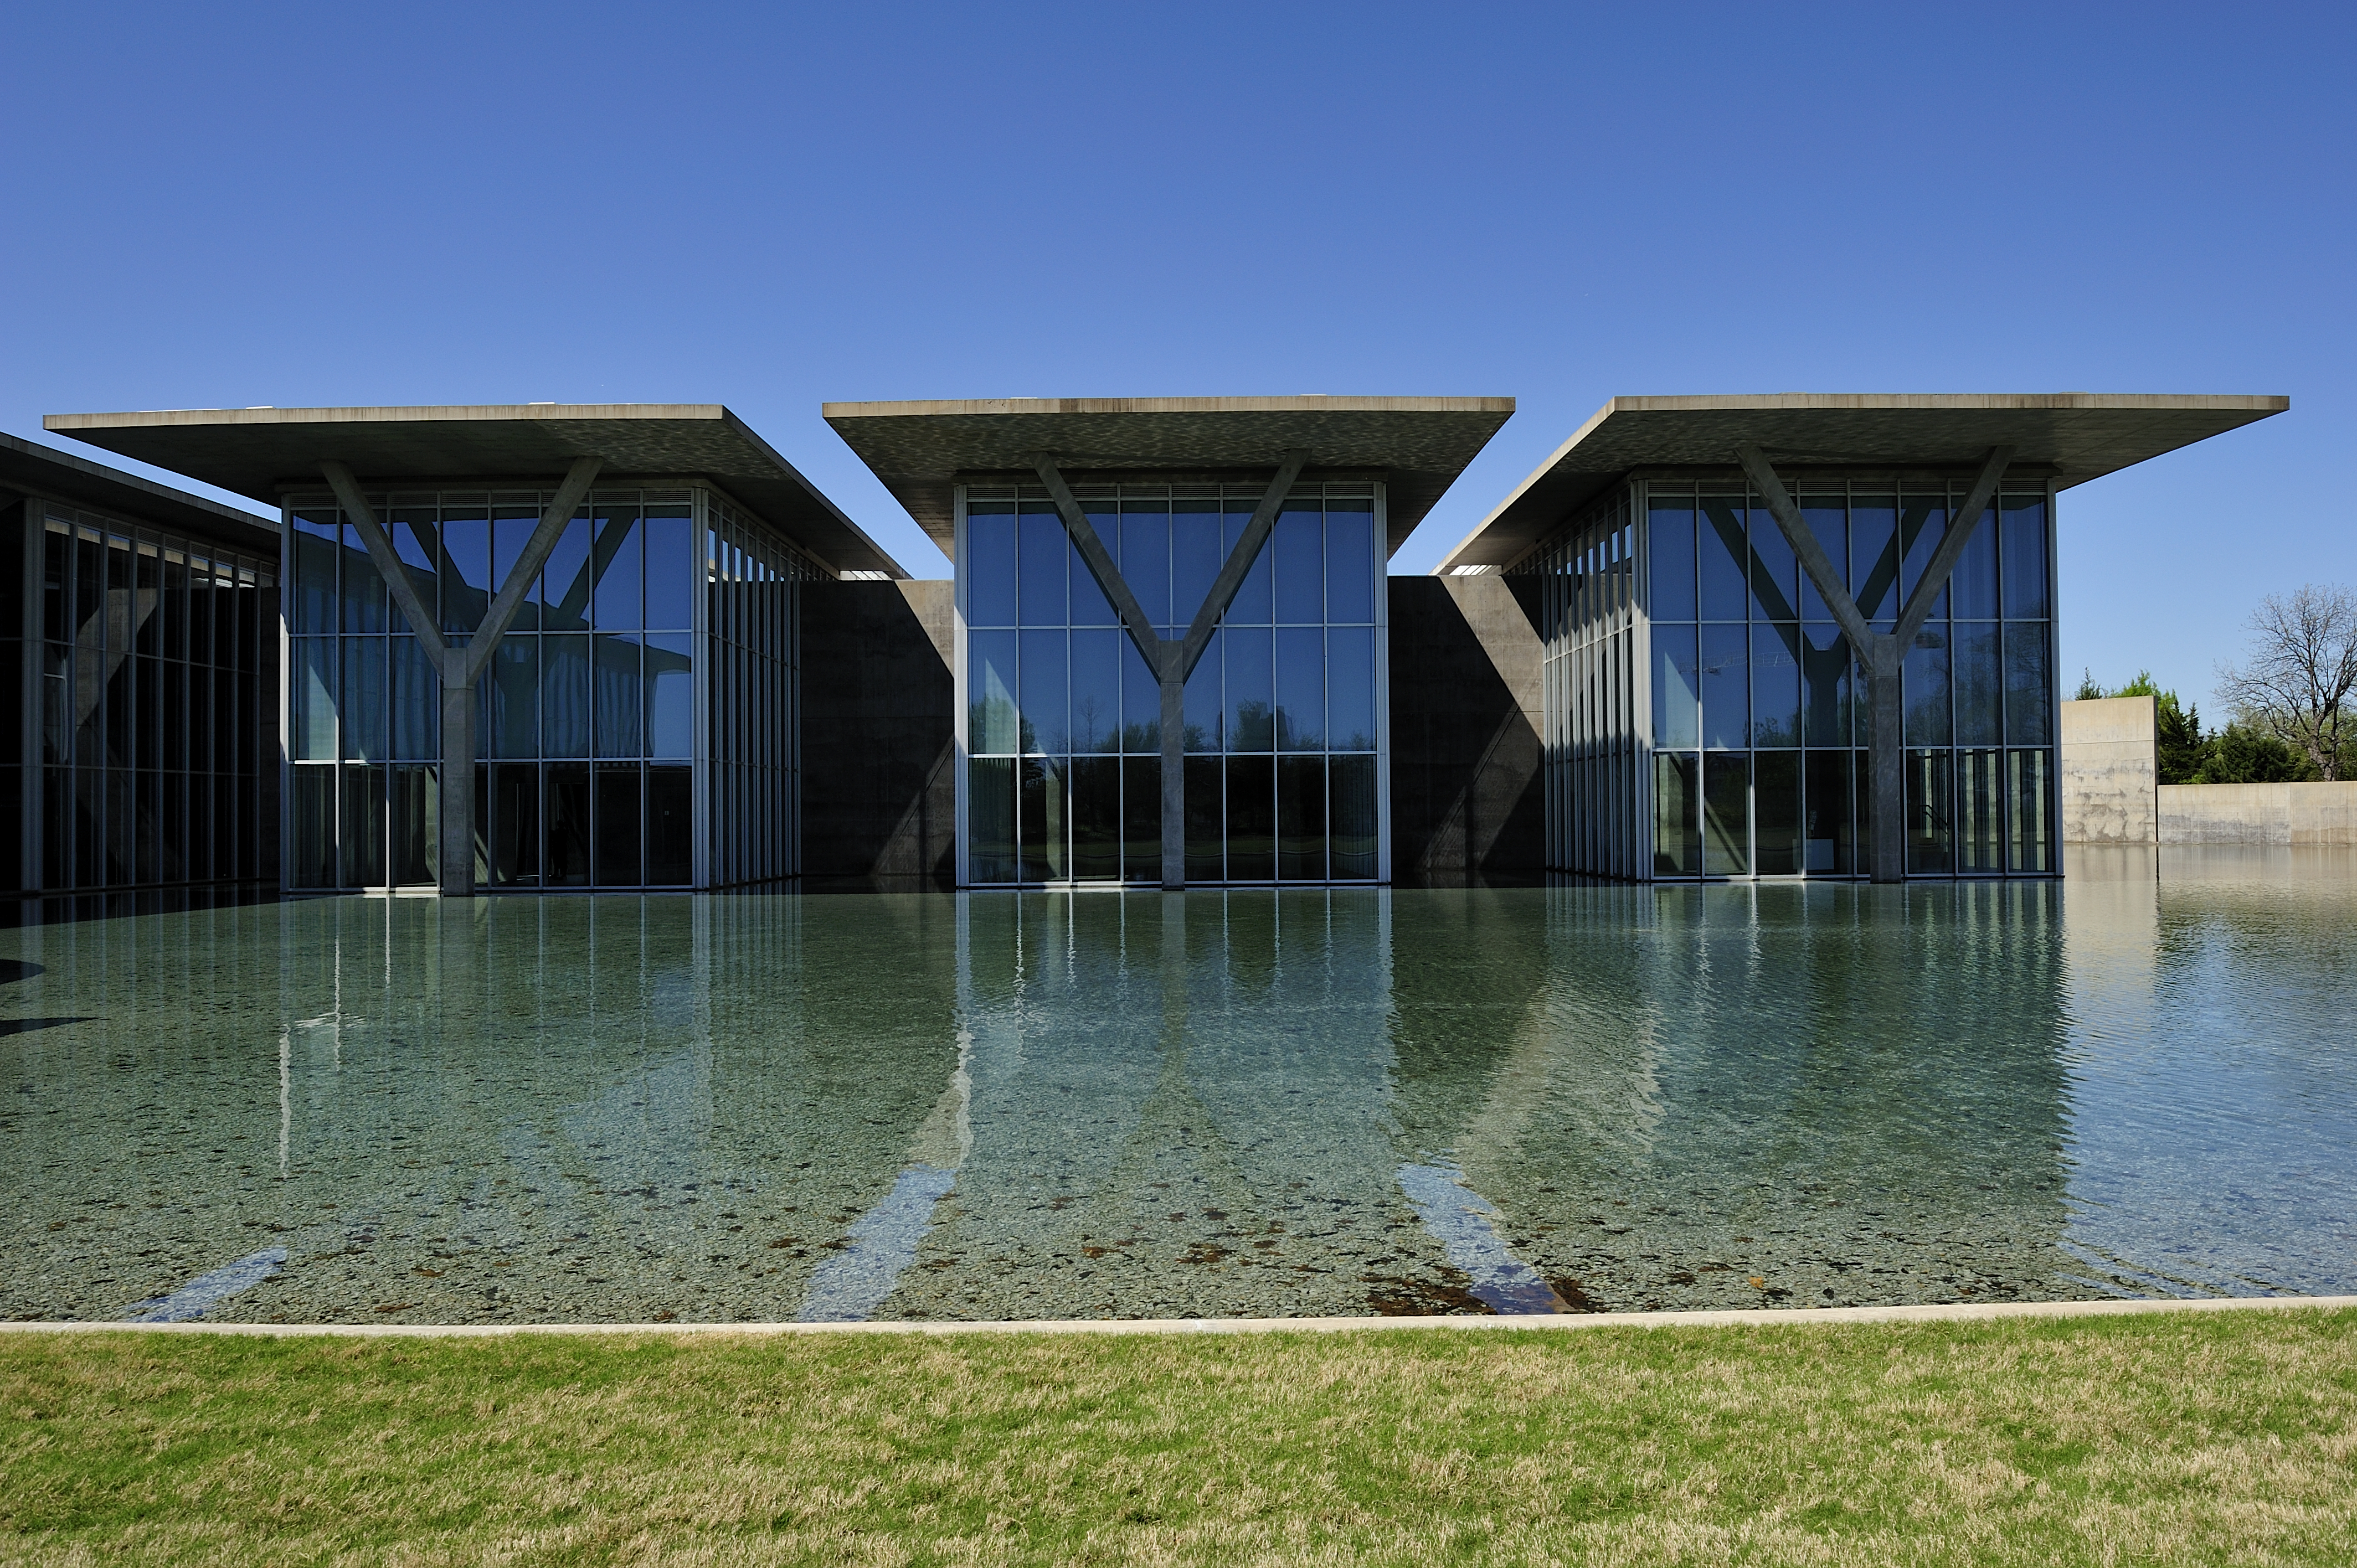 ^ 16 U.S. museums with outstanding architecture - urbed